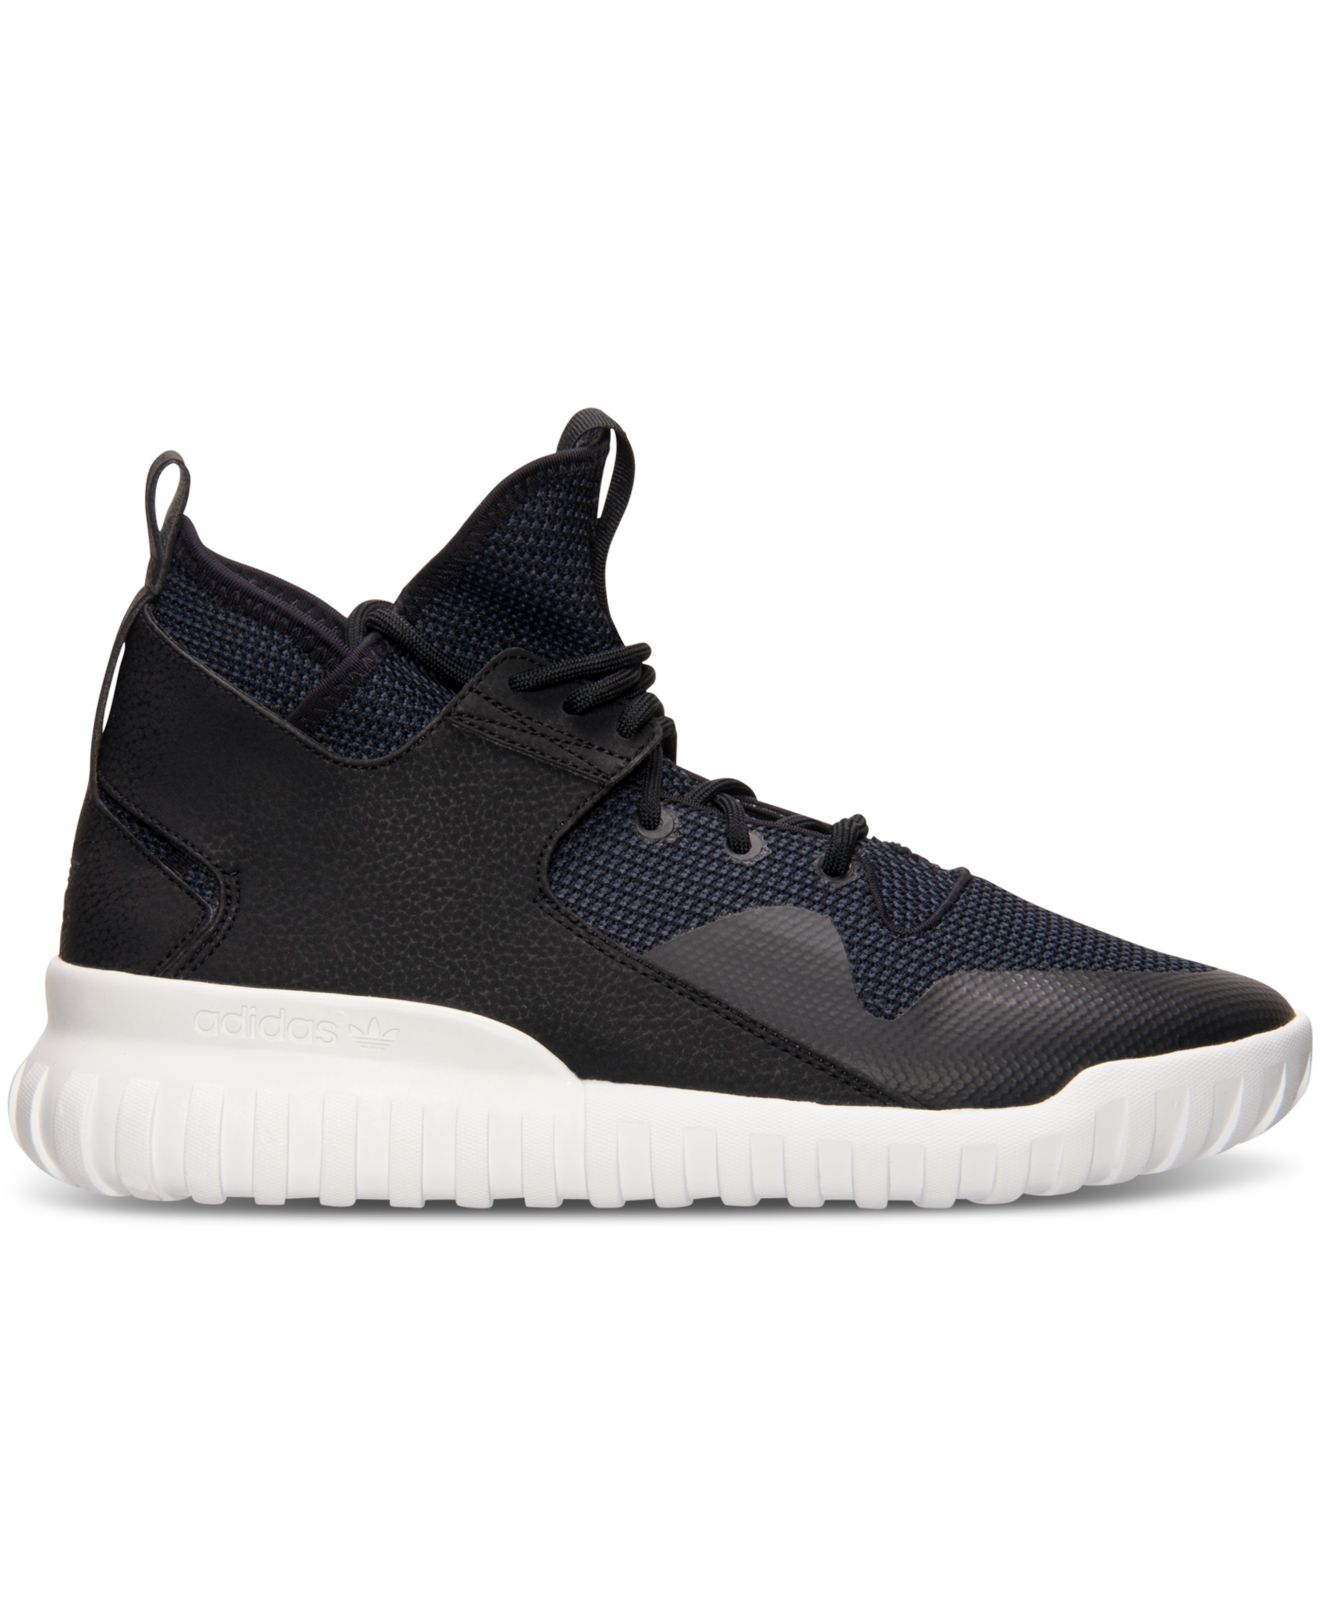 Adidas tubular yellow county Farm Service, Inc.